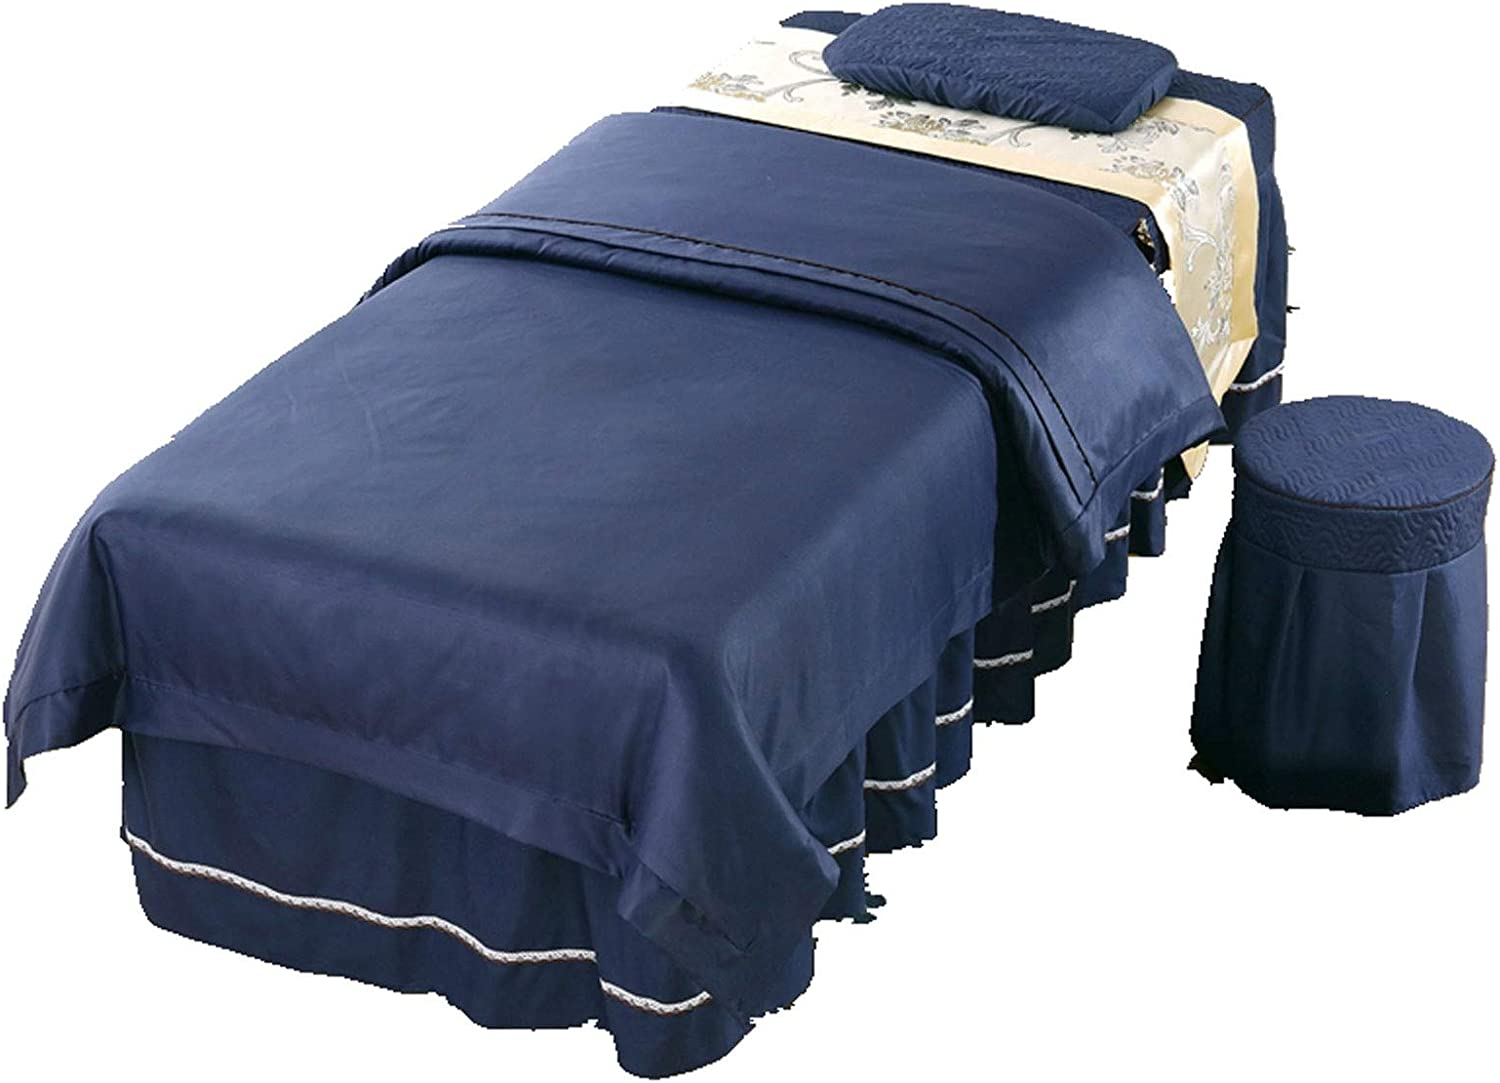 ZHANGYN Massage Table Sheet Al sold out. Sets Beauty Spa Cover Bed Be Import